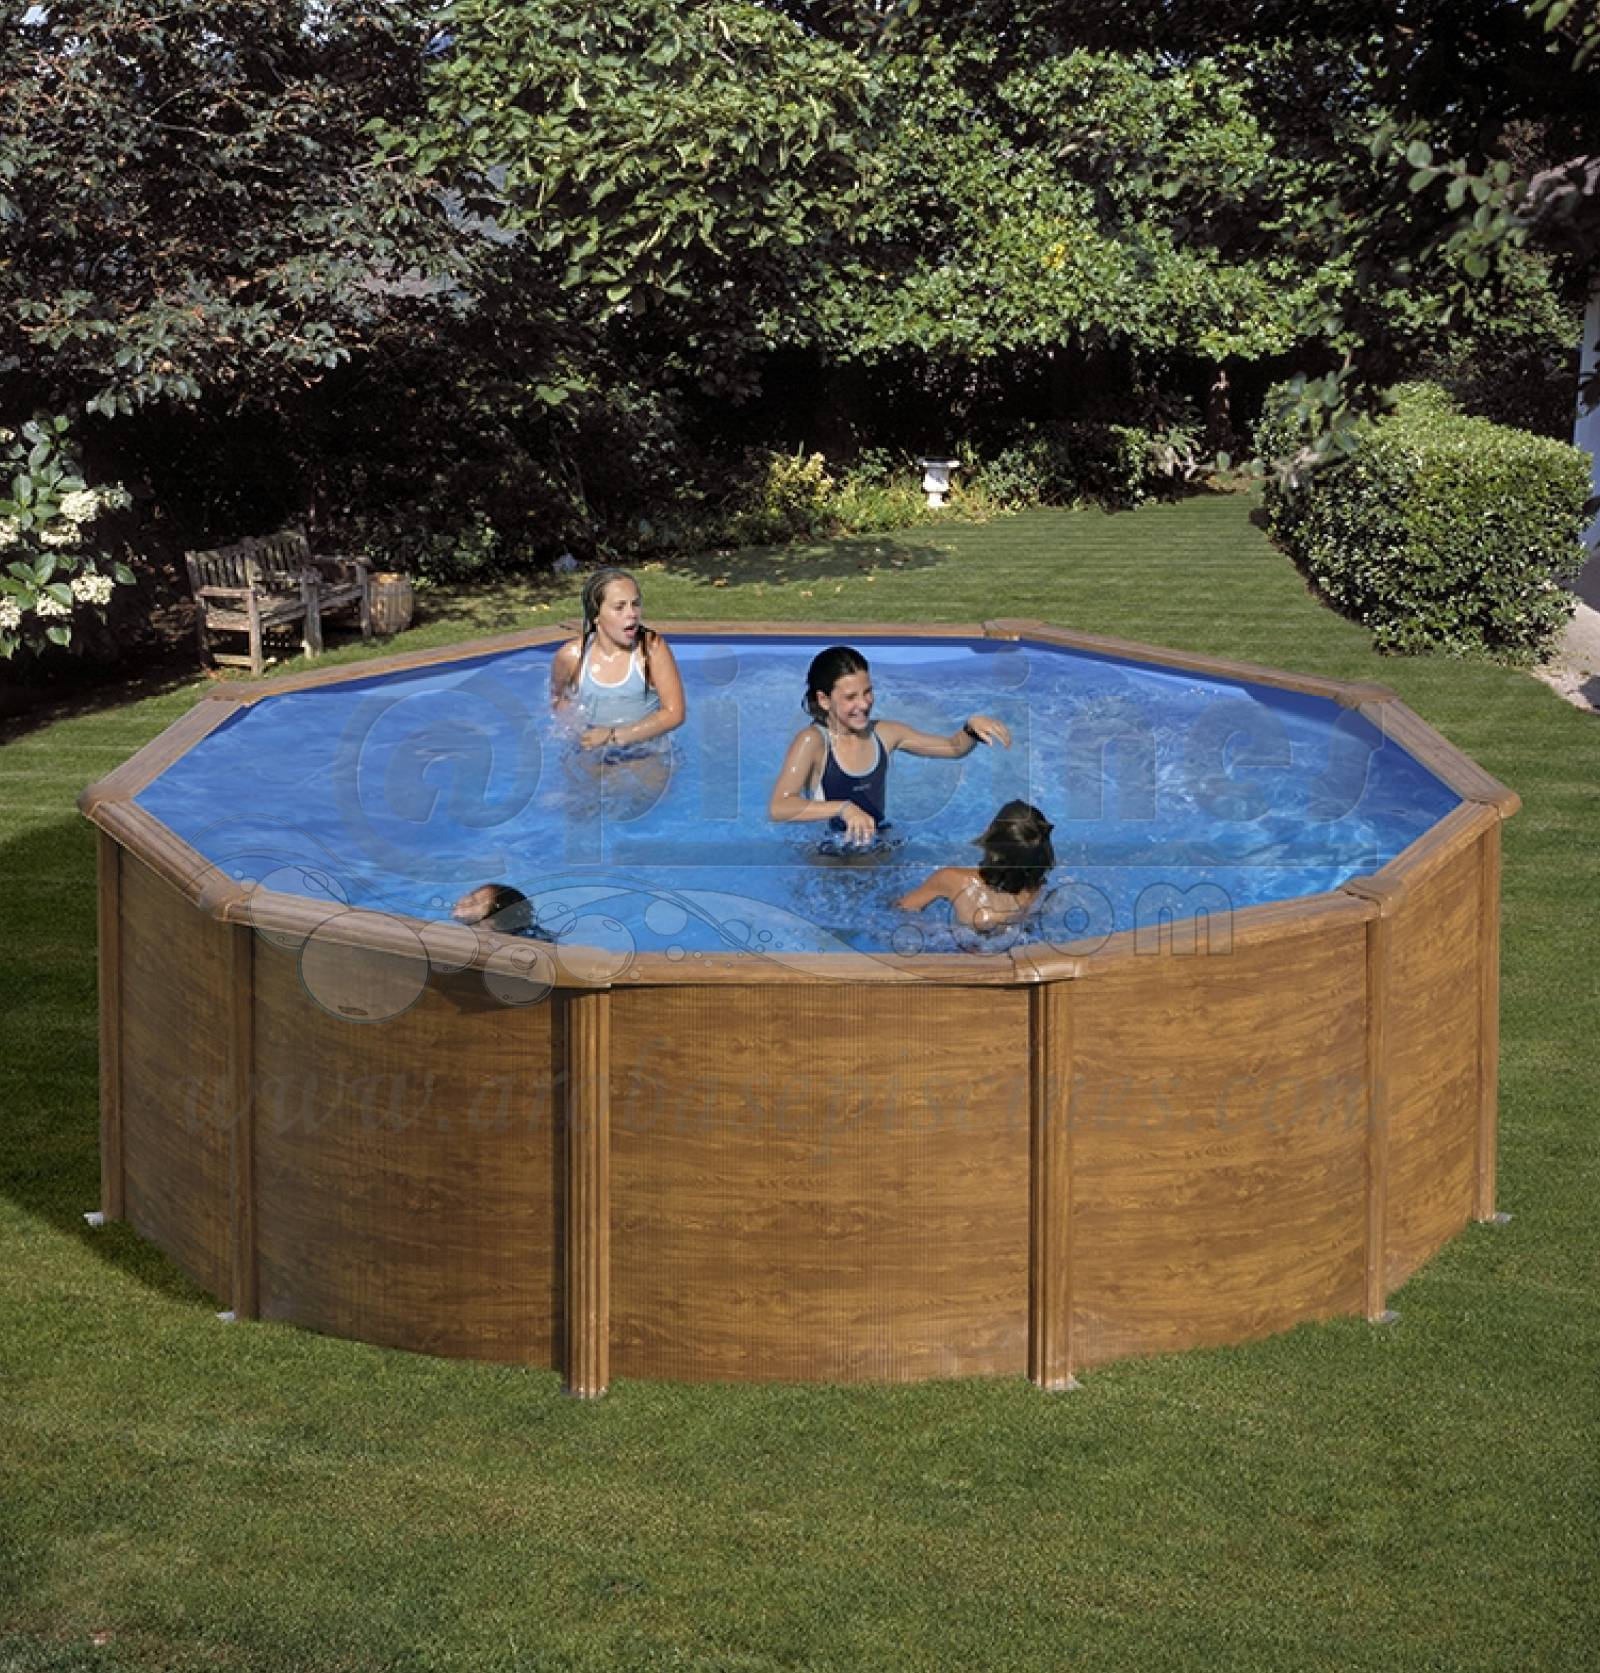 Piscine en kit hors sol acier immitation bois 3 50m de for Liner piscine diametre 3 50